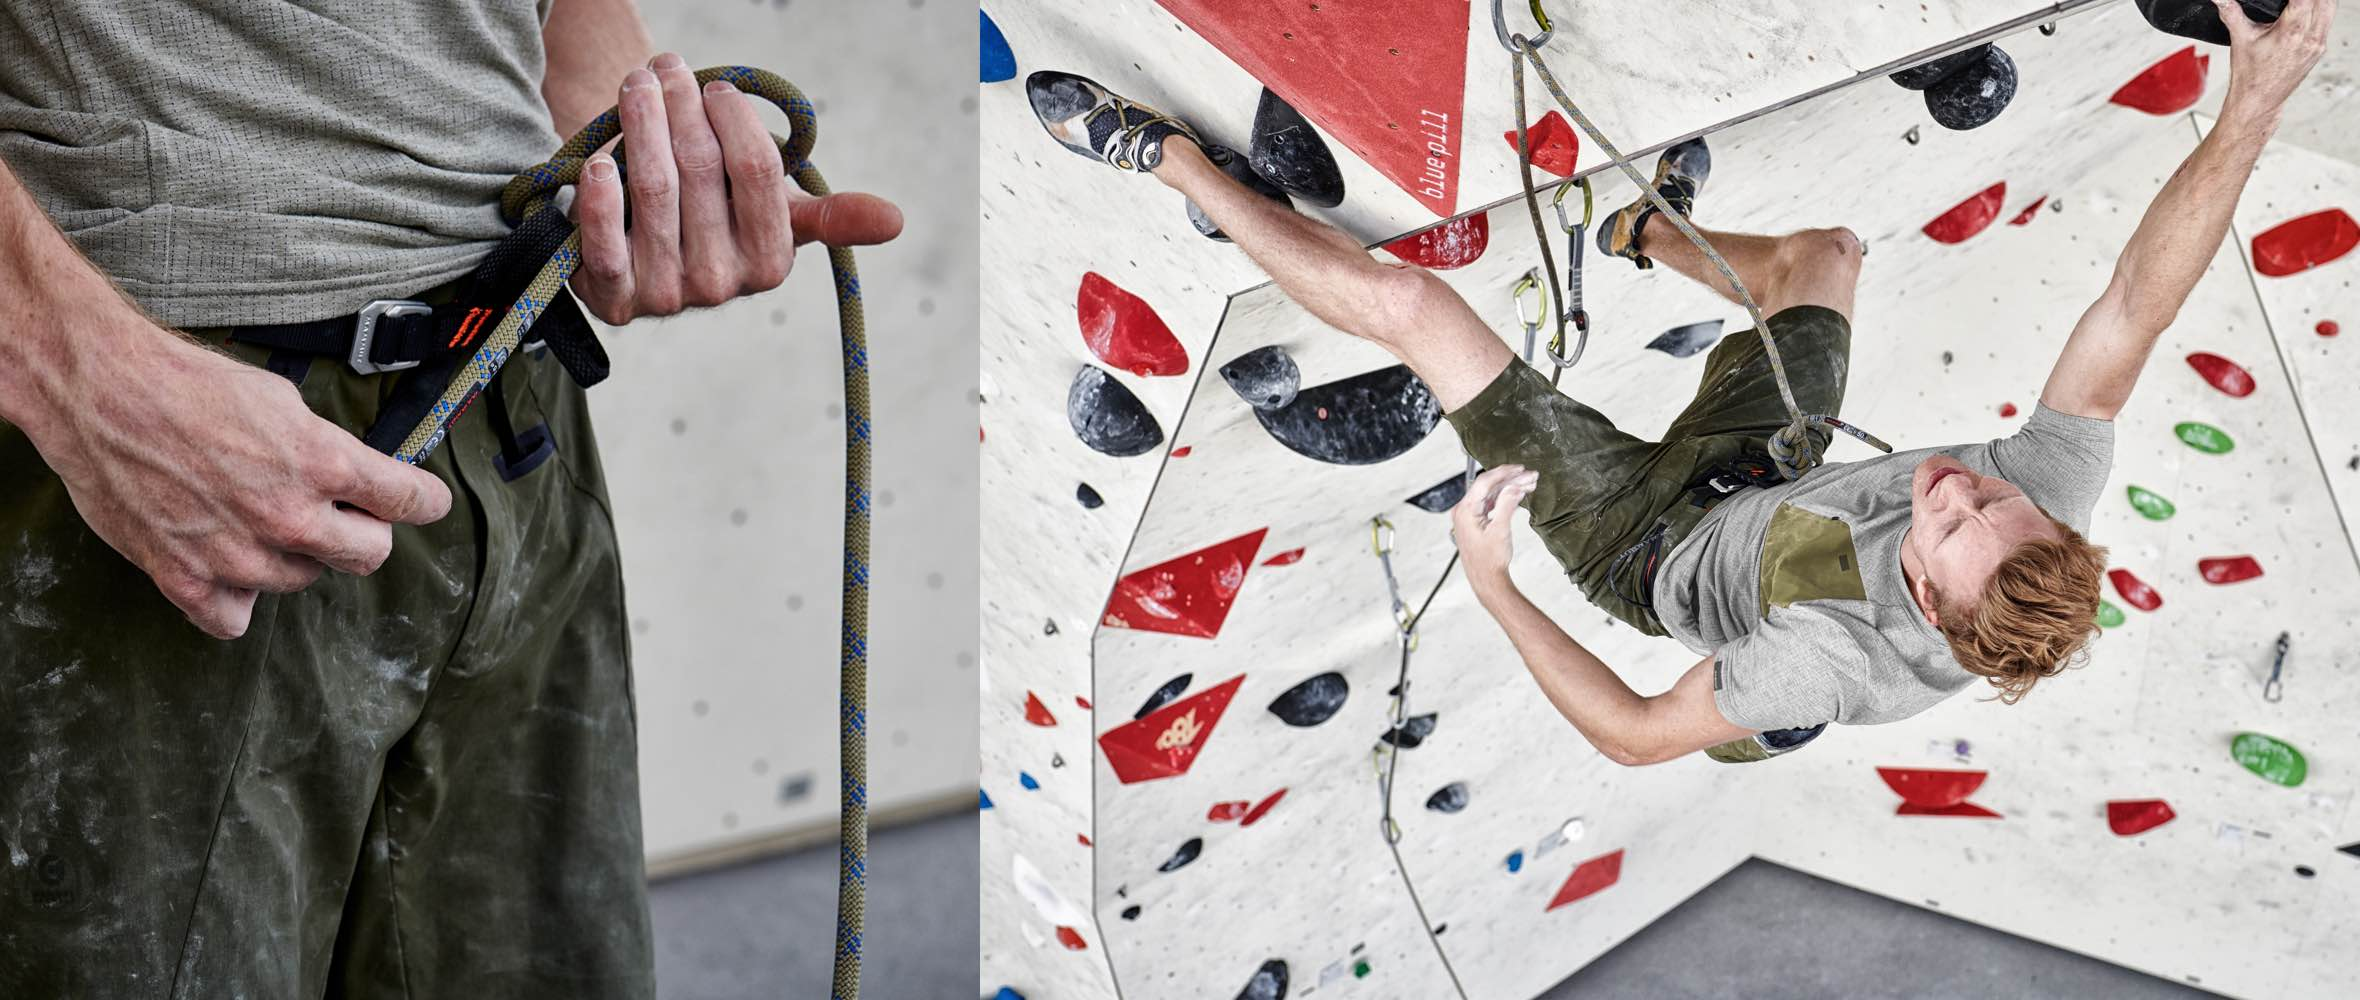 Mammut Pro Team Athlete Jakob Schubert trains in a climbing hall.